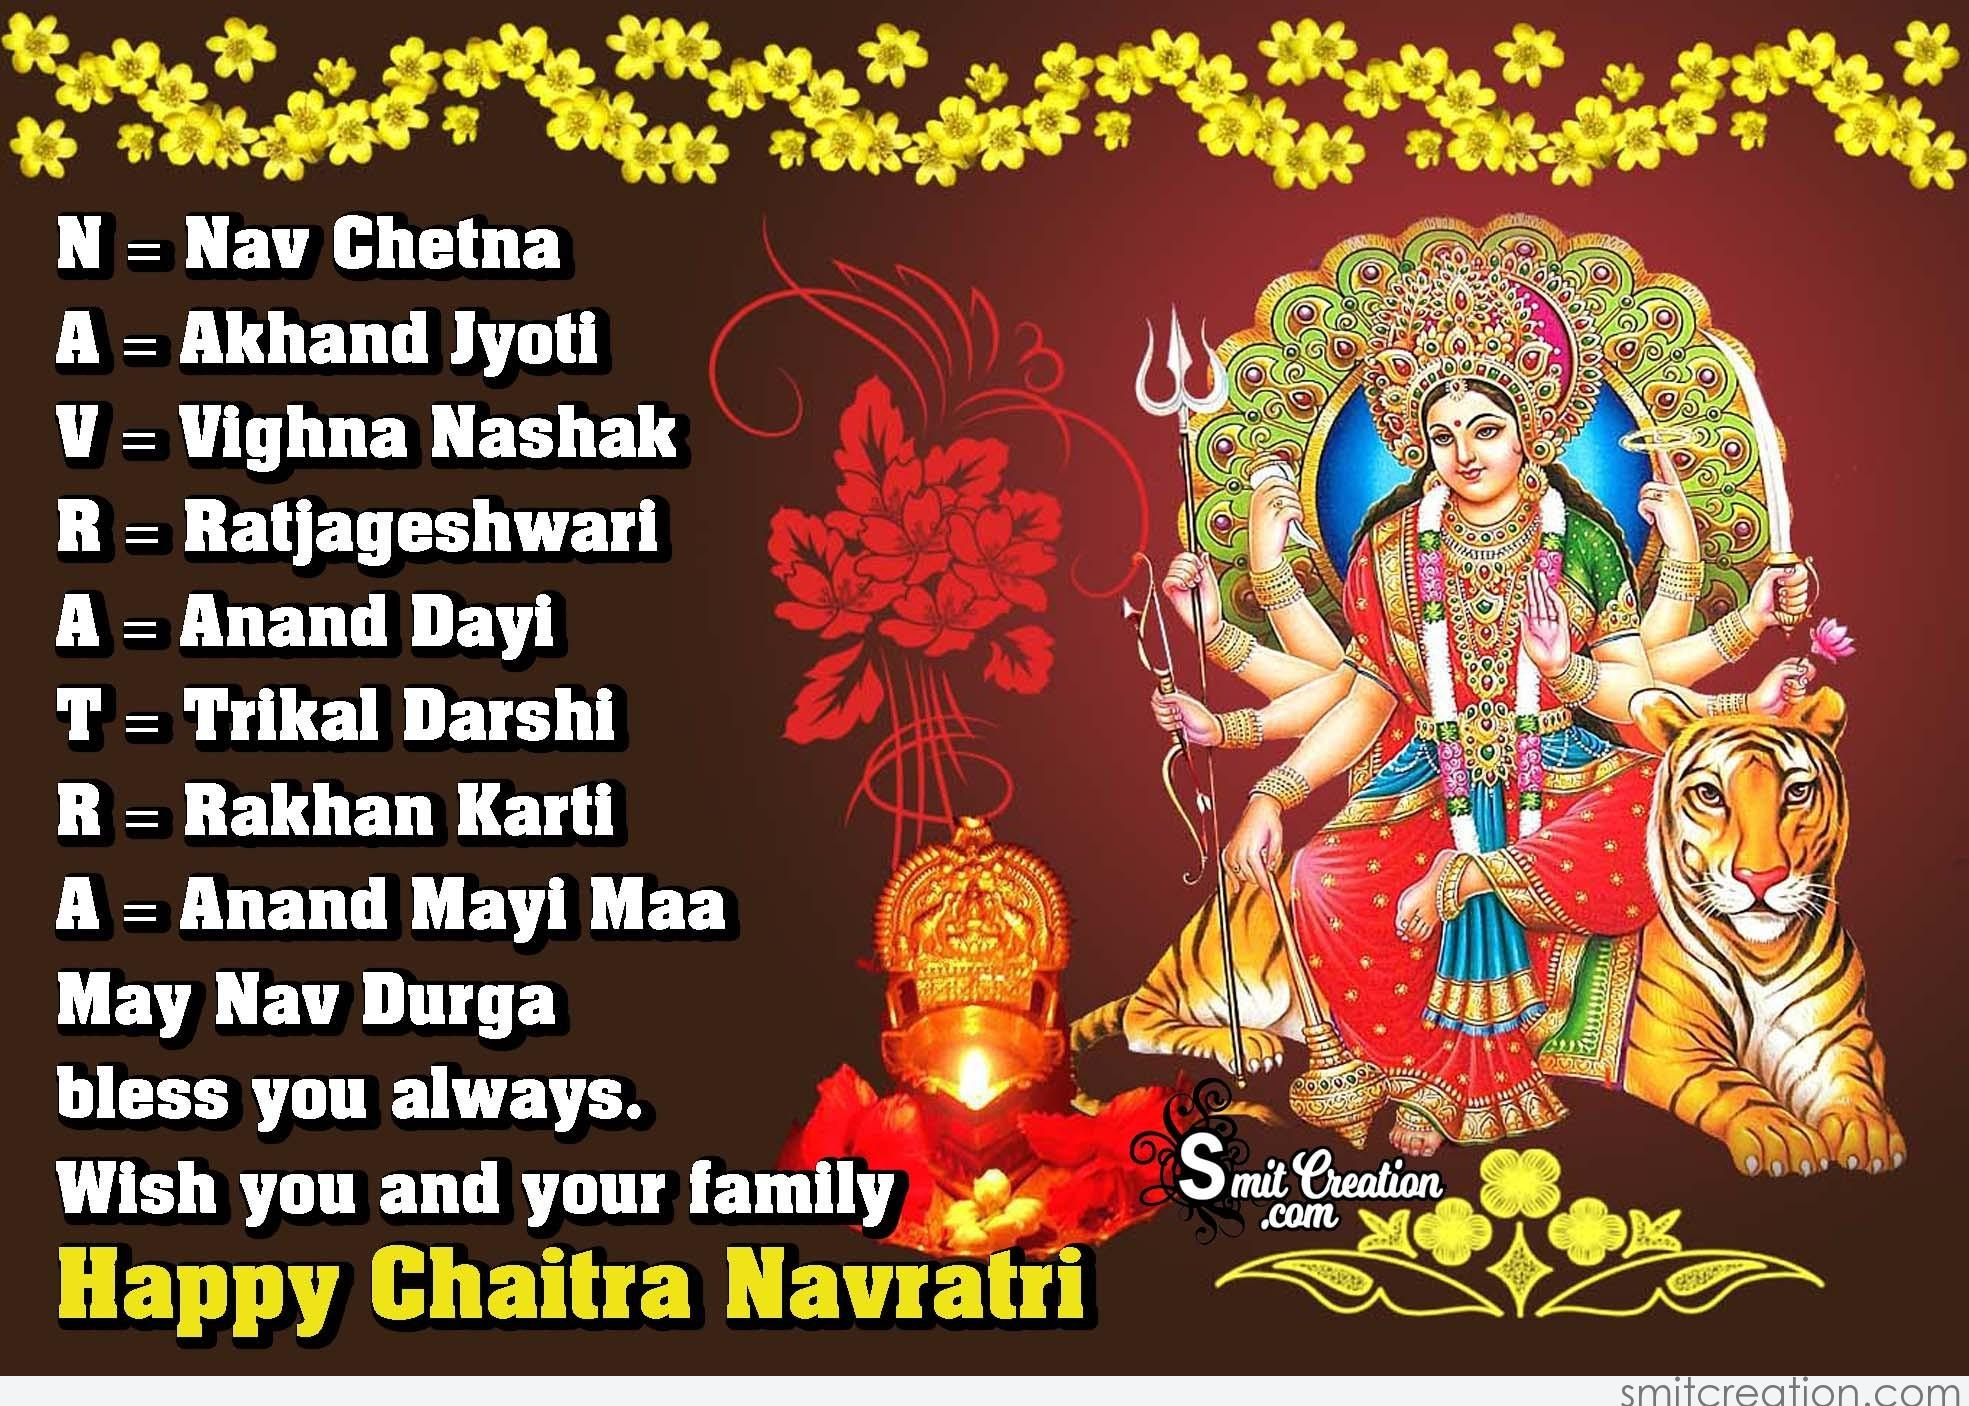 Chaitra navratri pictures and graphics smitcreation download image kristyandbryce Choice Image